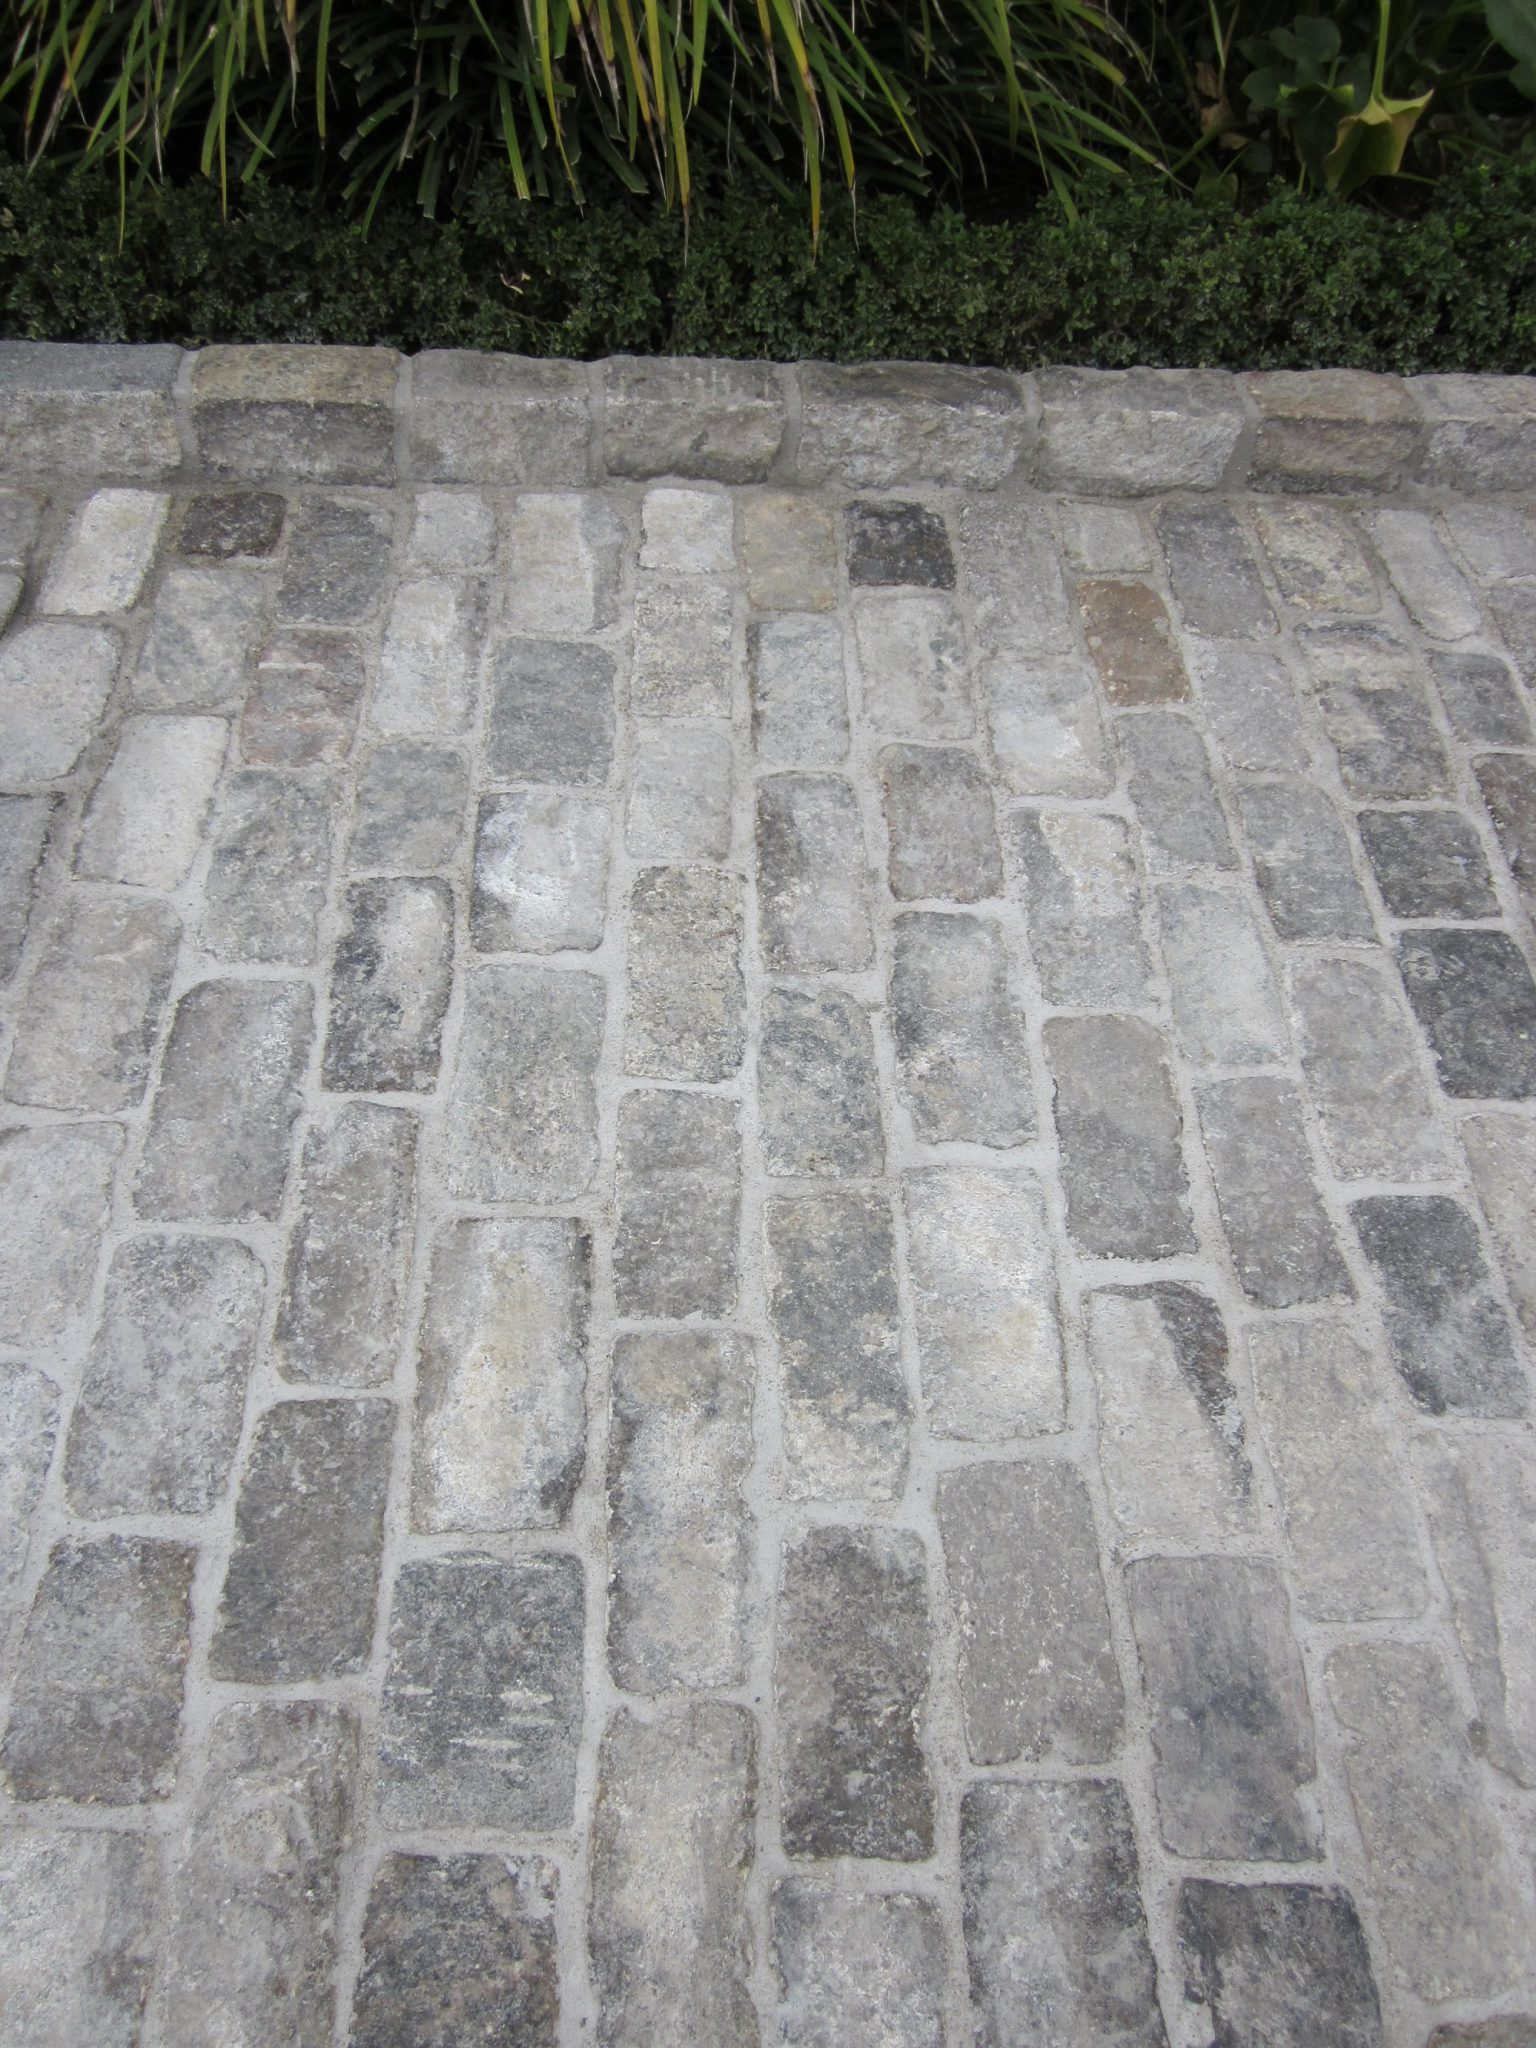 You can view all the different of Salt and Pepper Cobblestone, that blend perfectly.